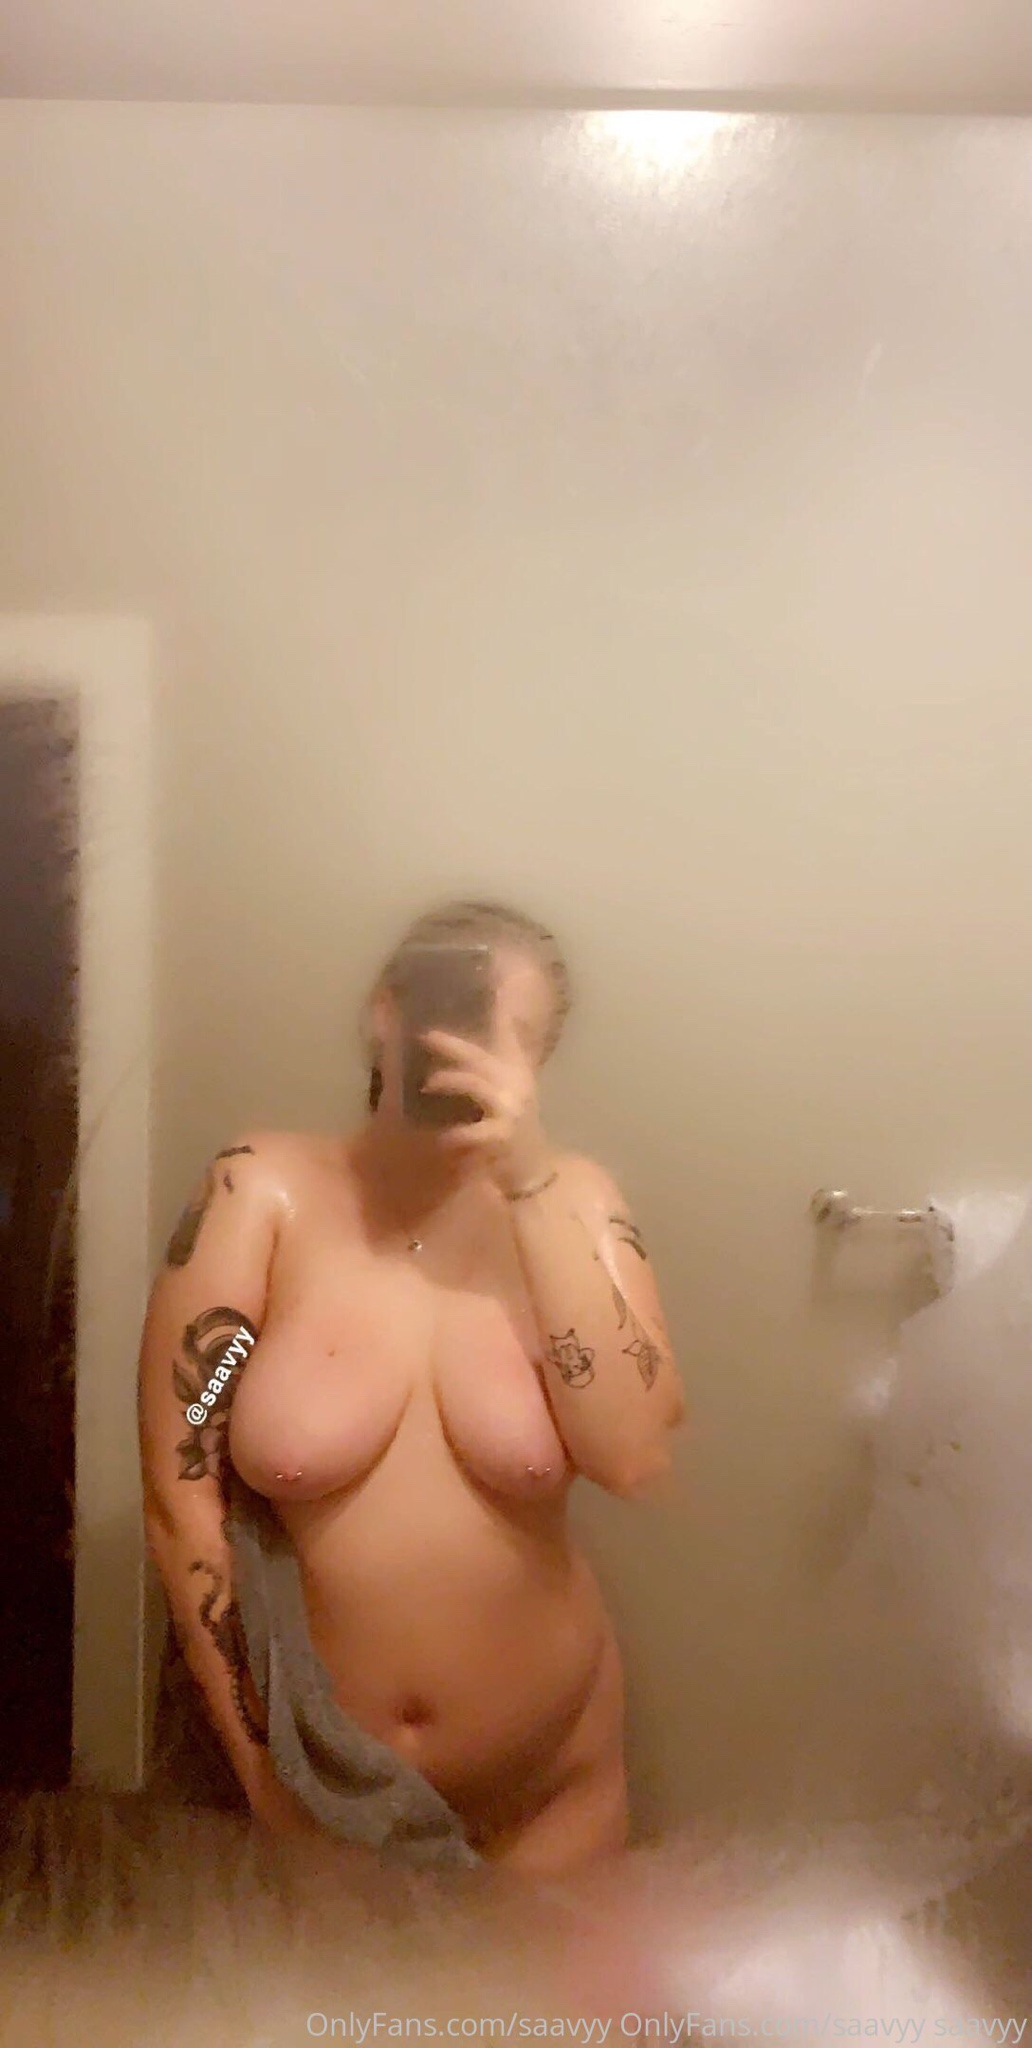 NotSaavy Nude Photos